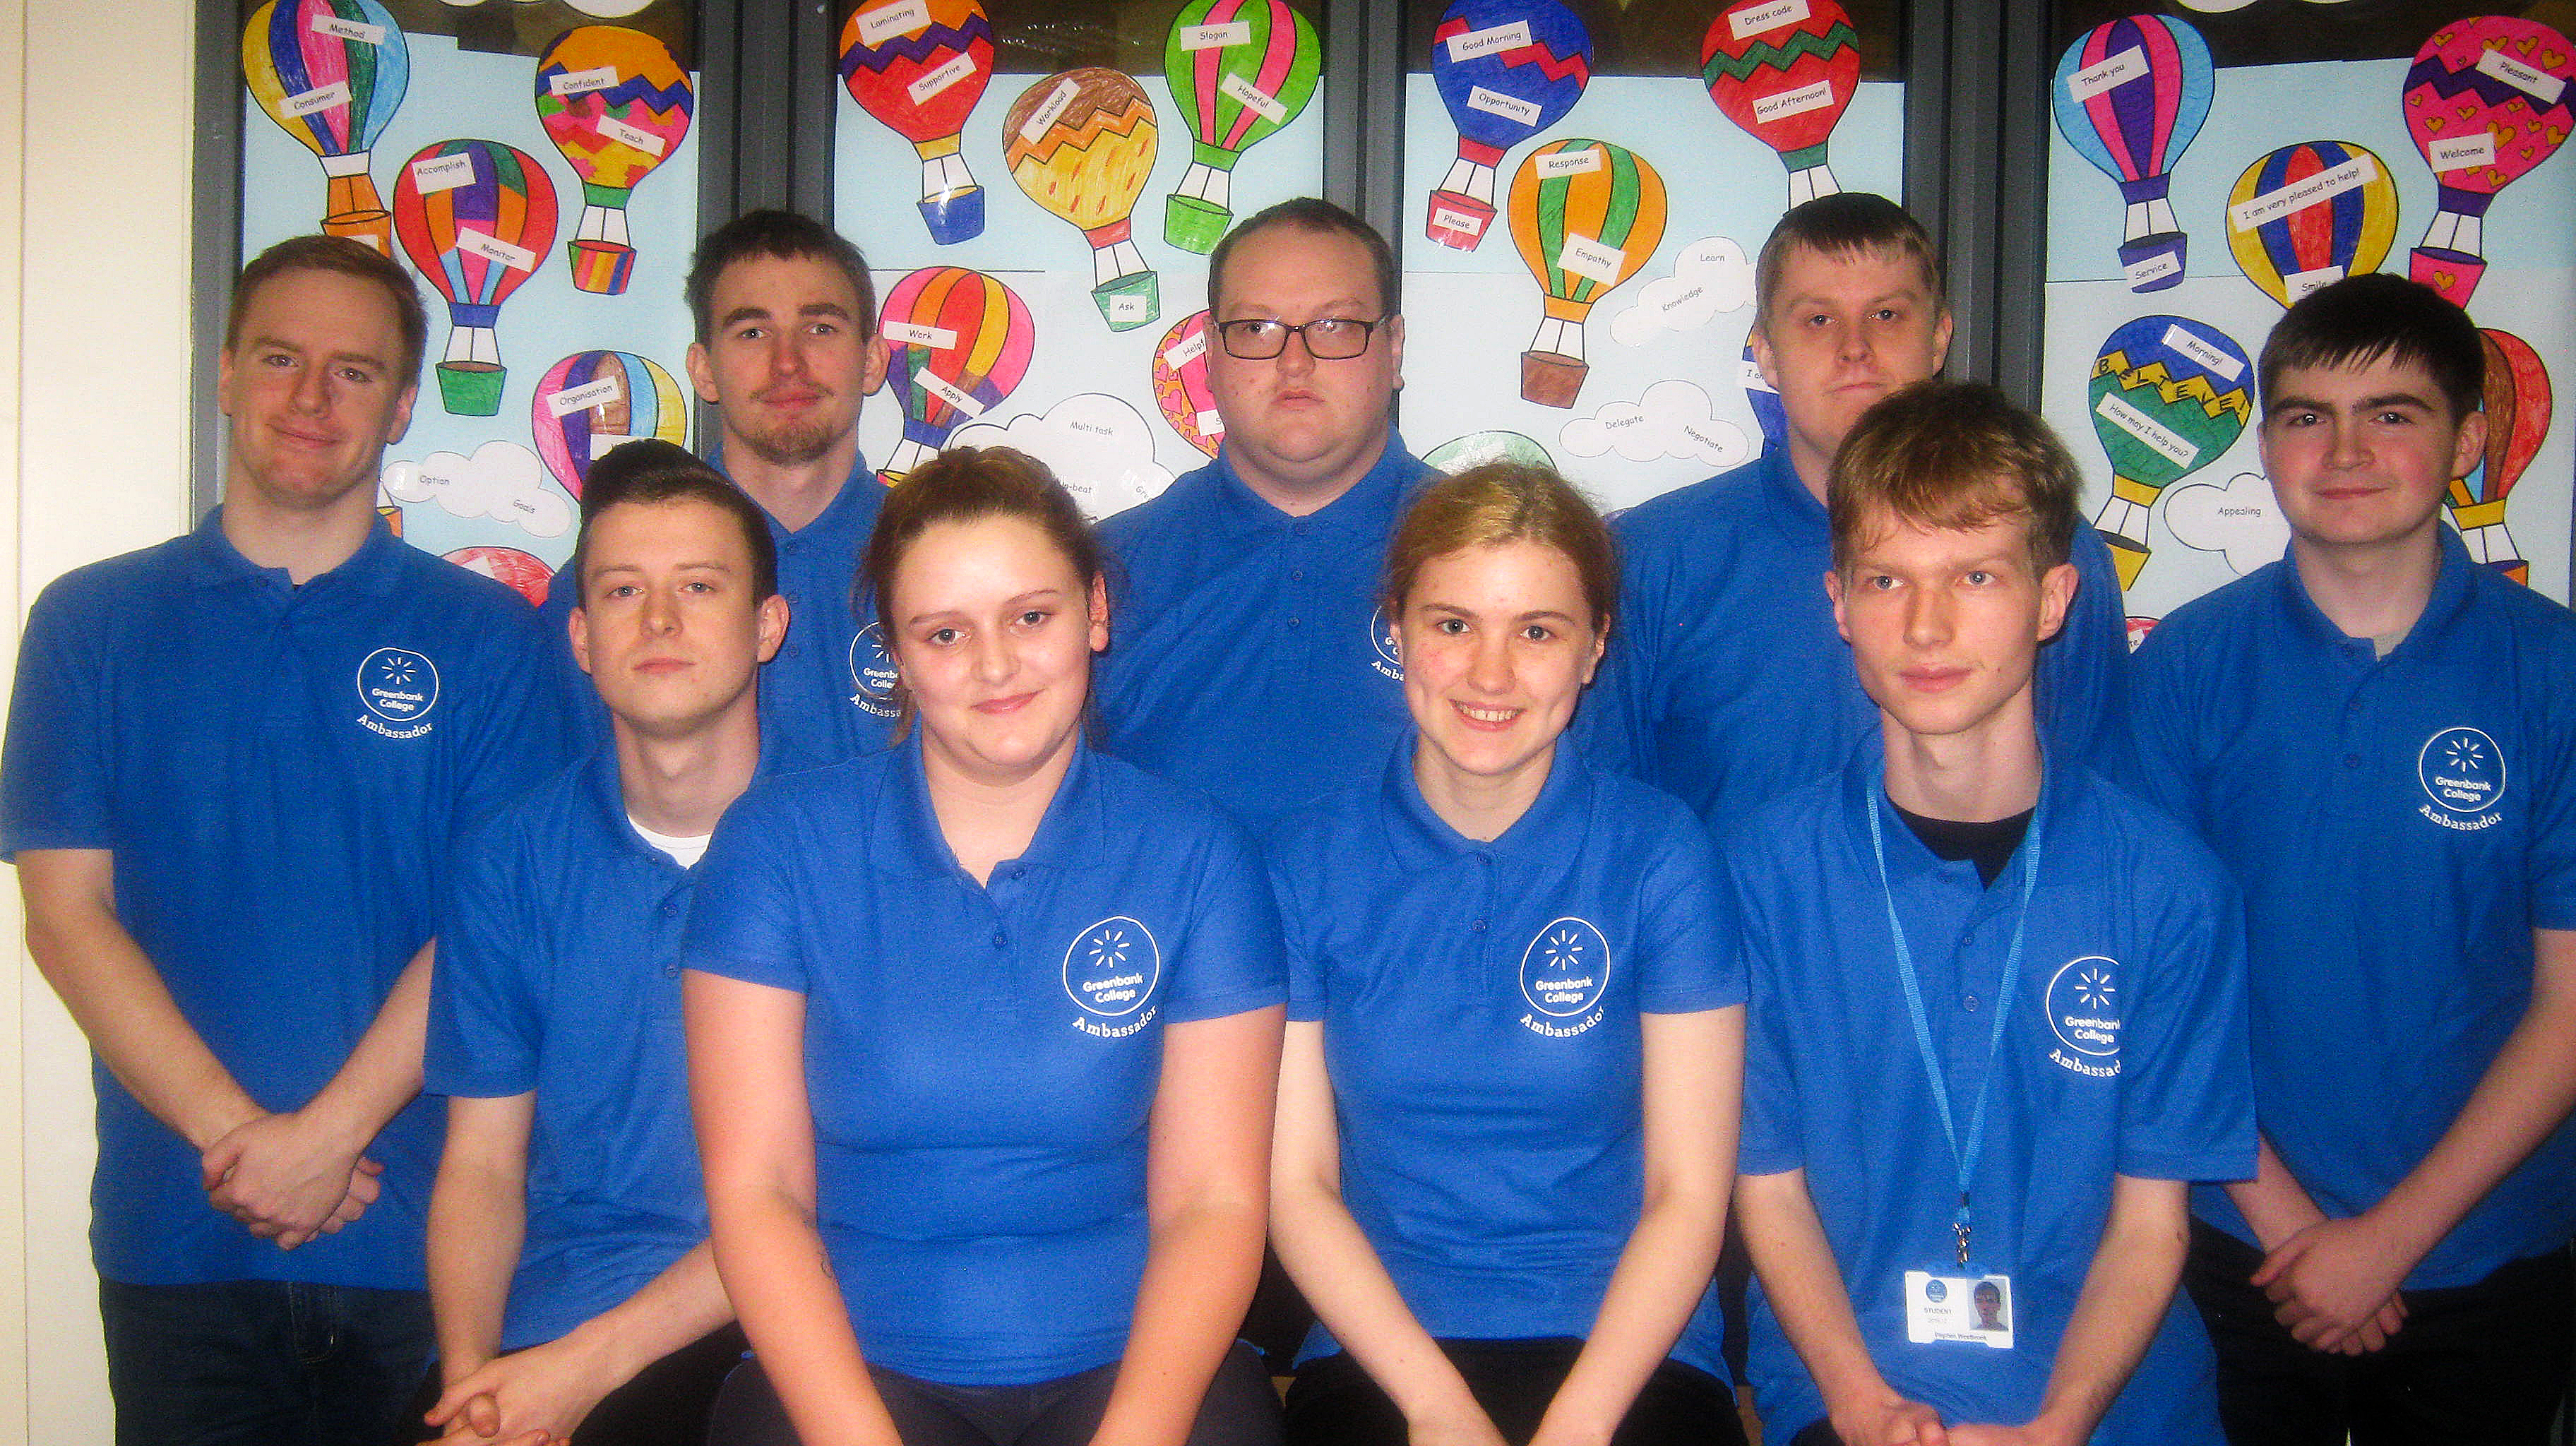 Greenbank College Student Ambassadors from the Customer Service department